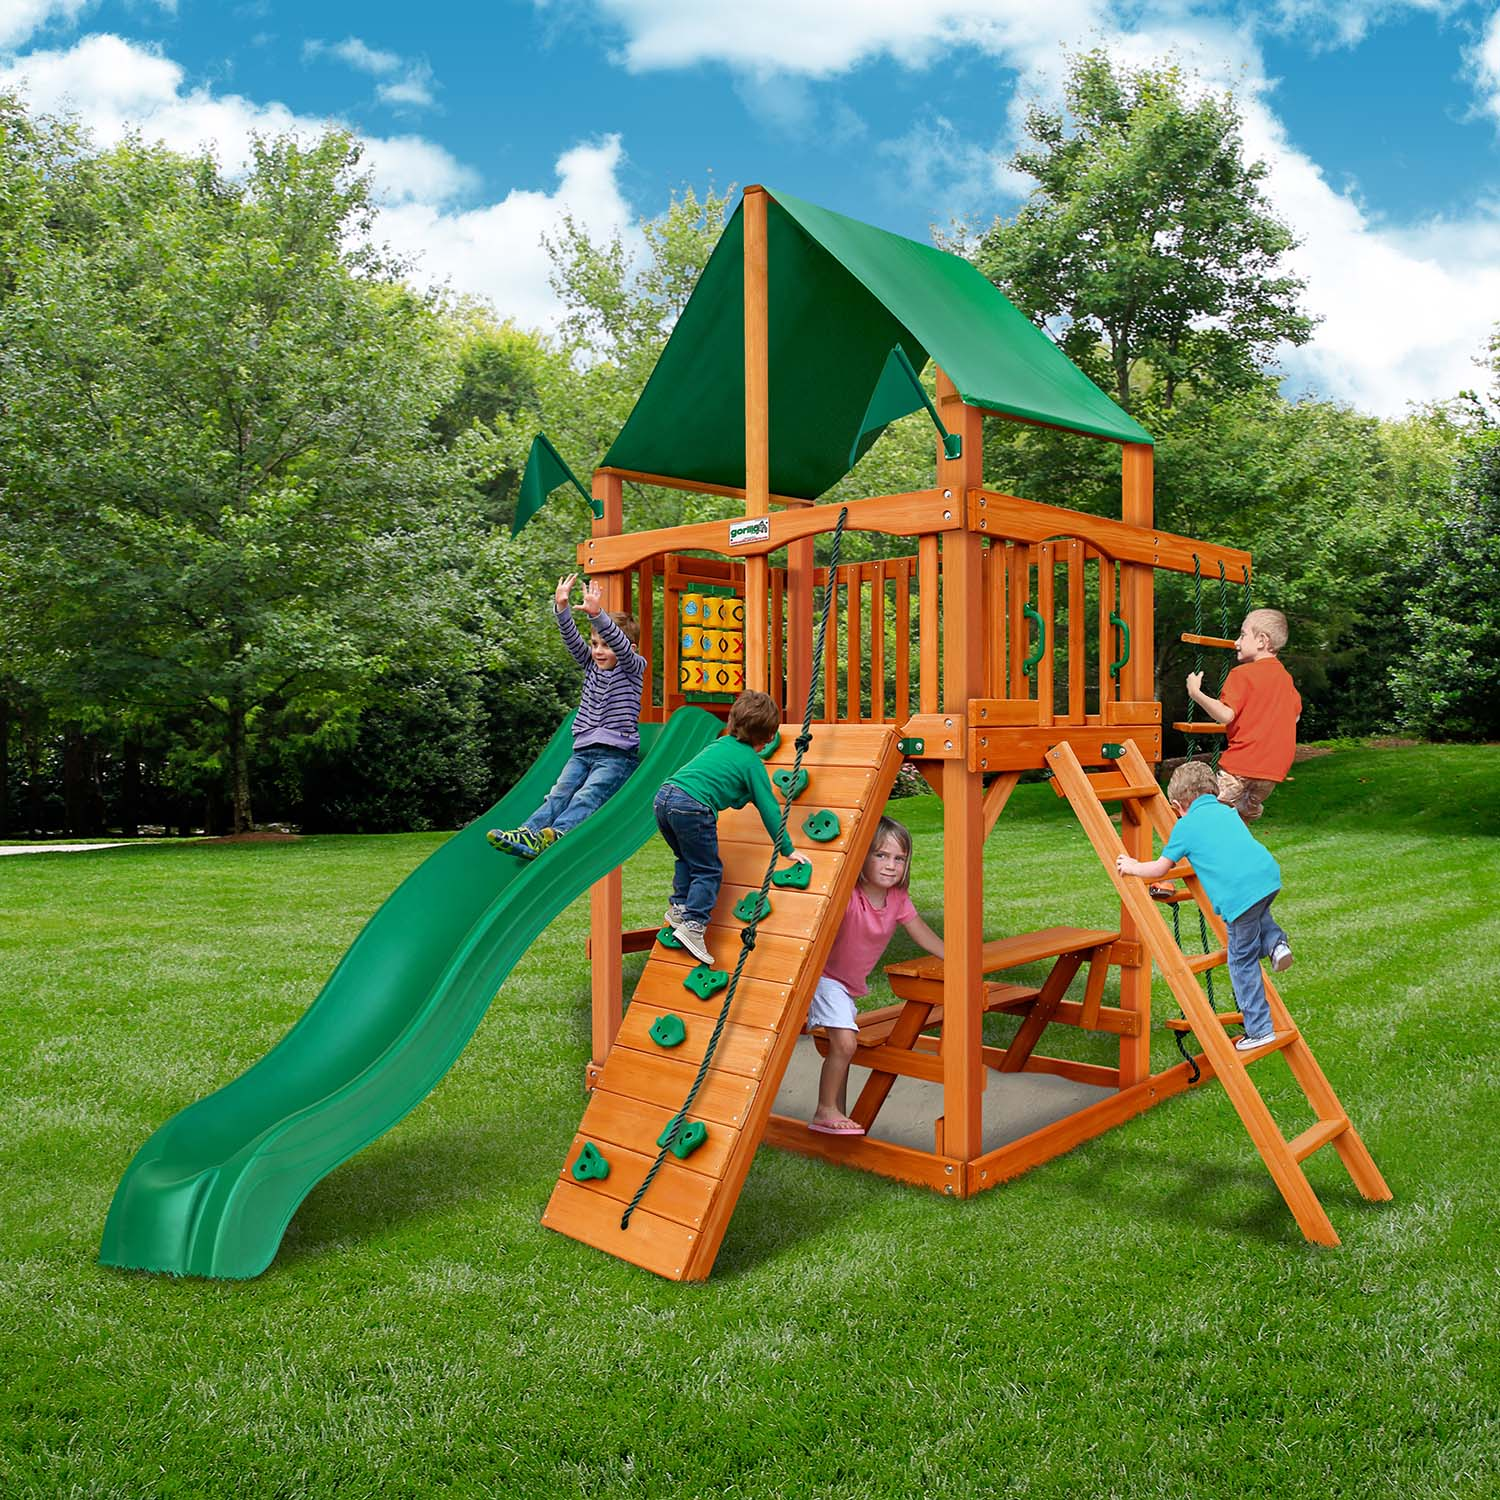 Gorilla-Playsets-Chateau-Tower-Deluxe-Wooden-Swingset